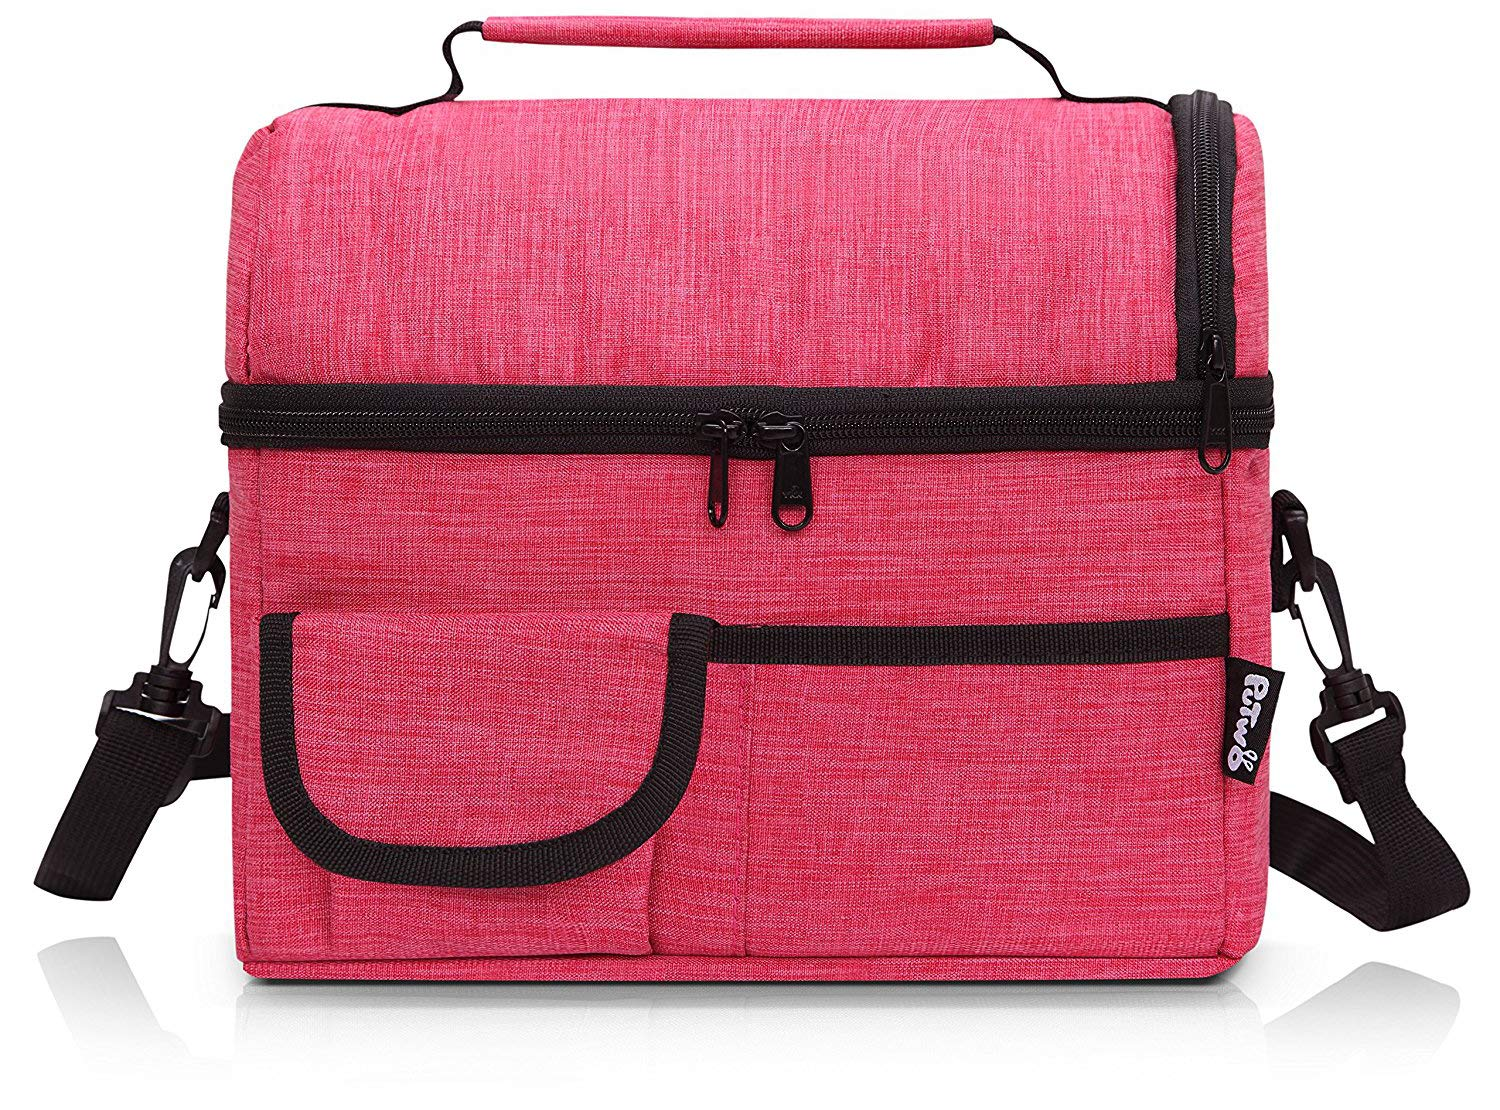 PuTwo Lunch Bag 8L Insulated Lunch Bag Lunch Box Lunch Bags for Women Lunch Bag for Men Cooler Bag with YKK Zip and Adjustable Shoulder Strap Lunch Tote for Kids Lunch Box Lunch Pail - Rosy